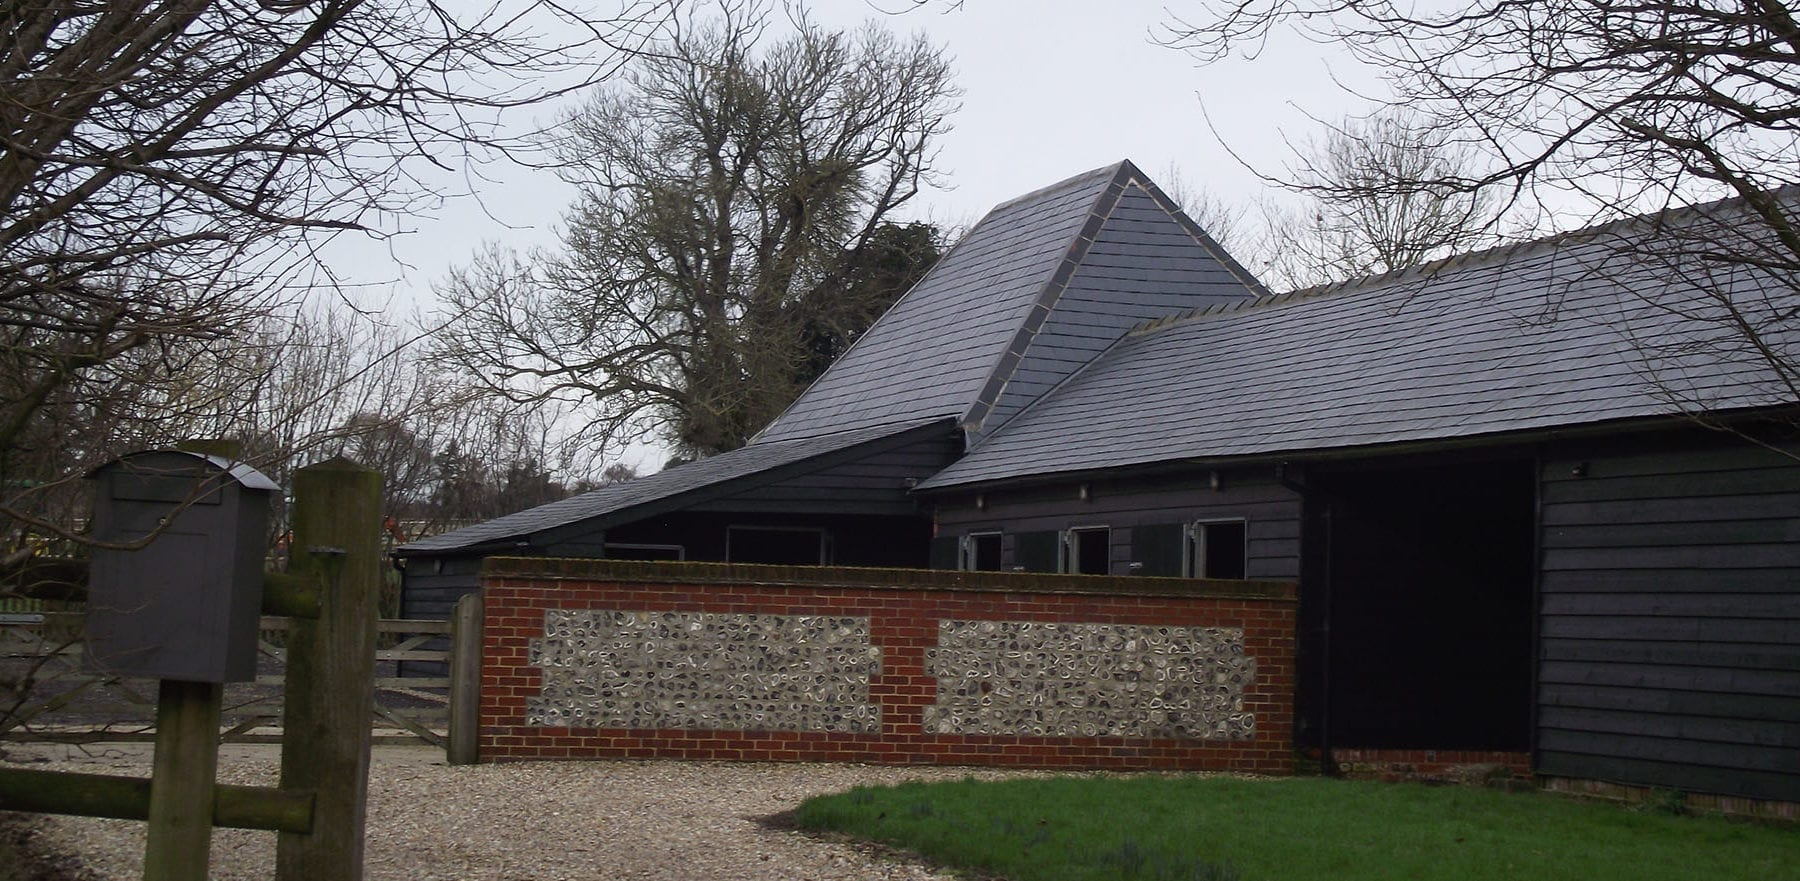 Lifestiles - Spanish Natural Slate Roof Tiles - Mayfield, England